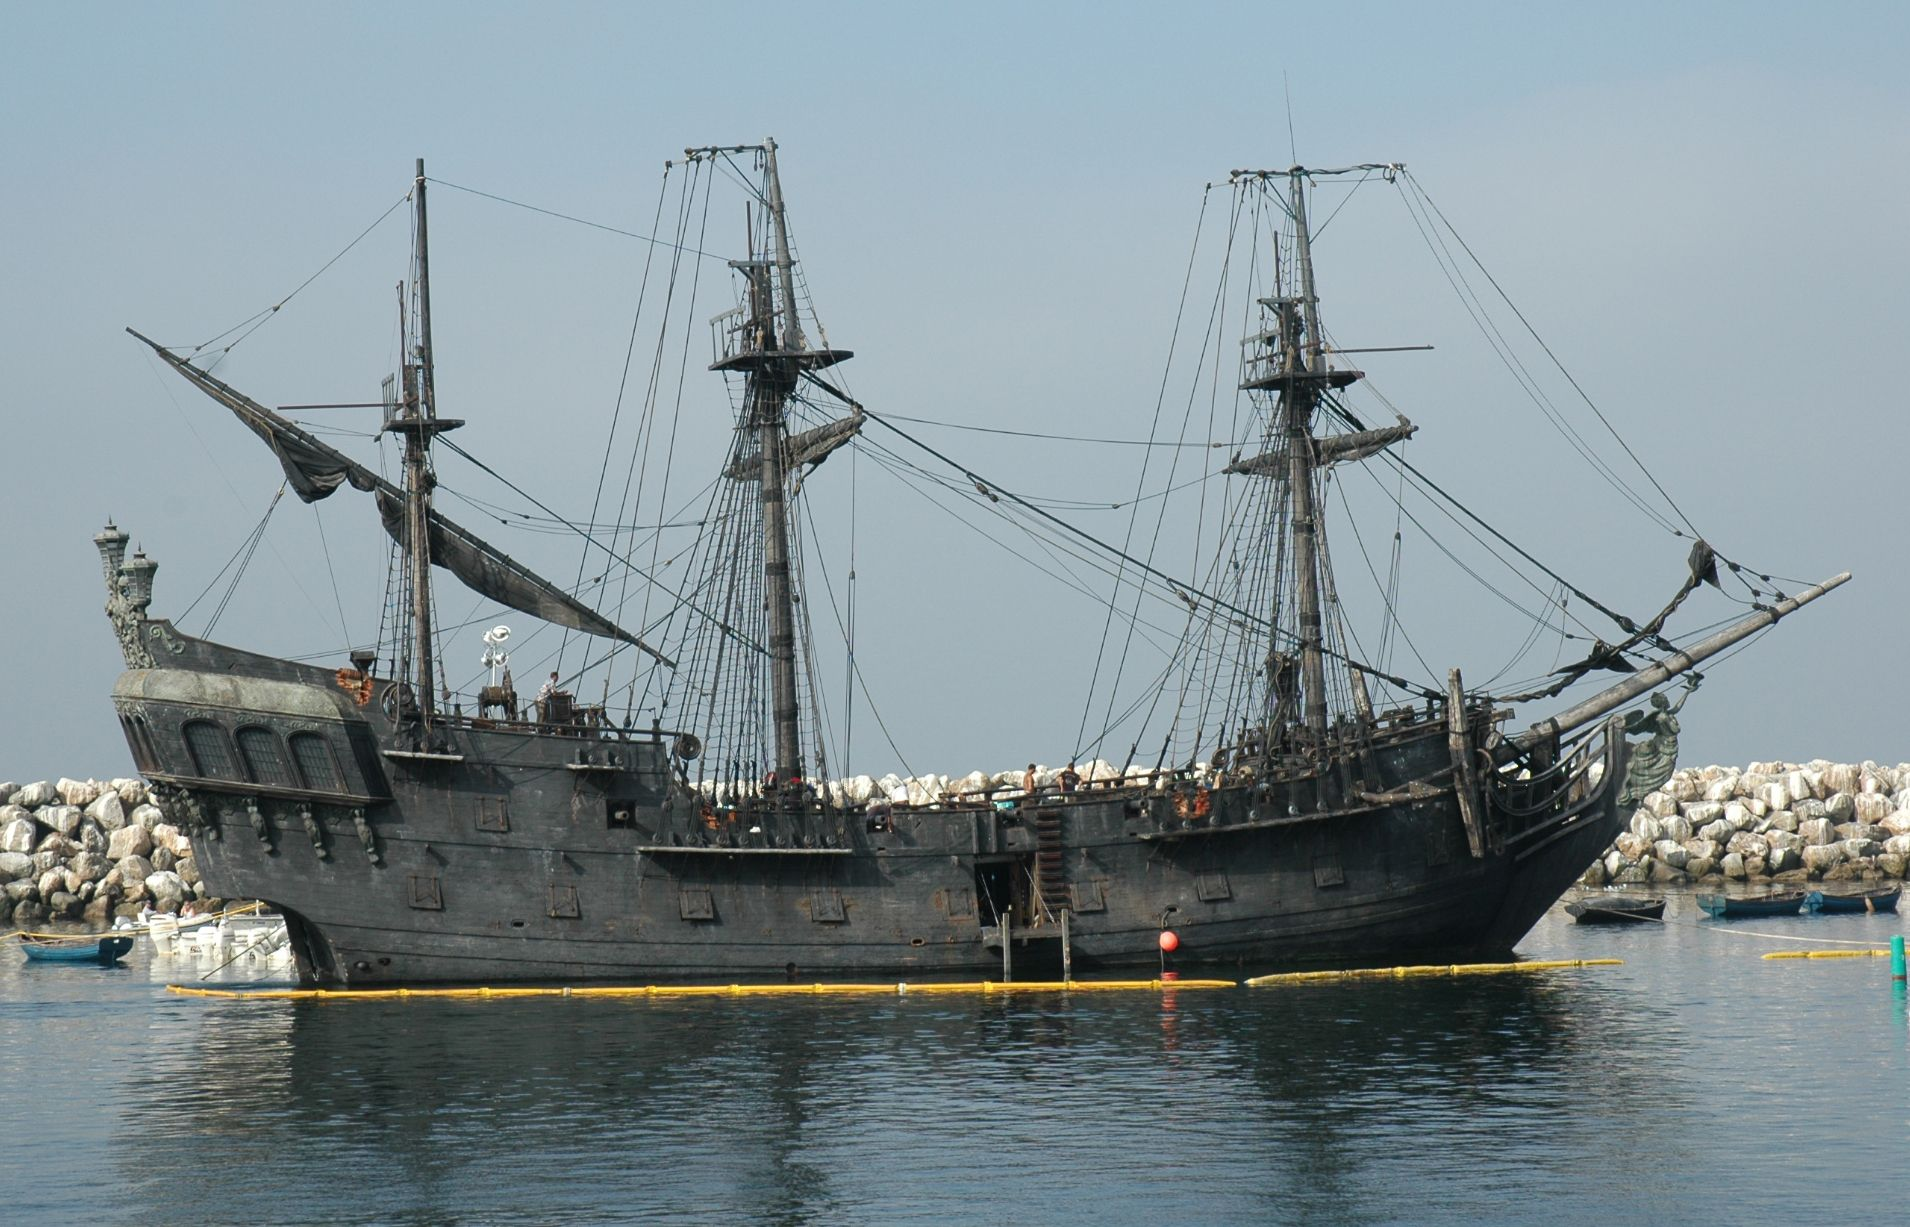 real pirate ships - Google Search | Boot fahren, Piraten ...